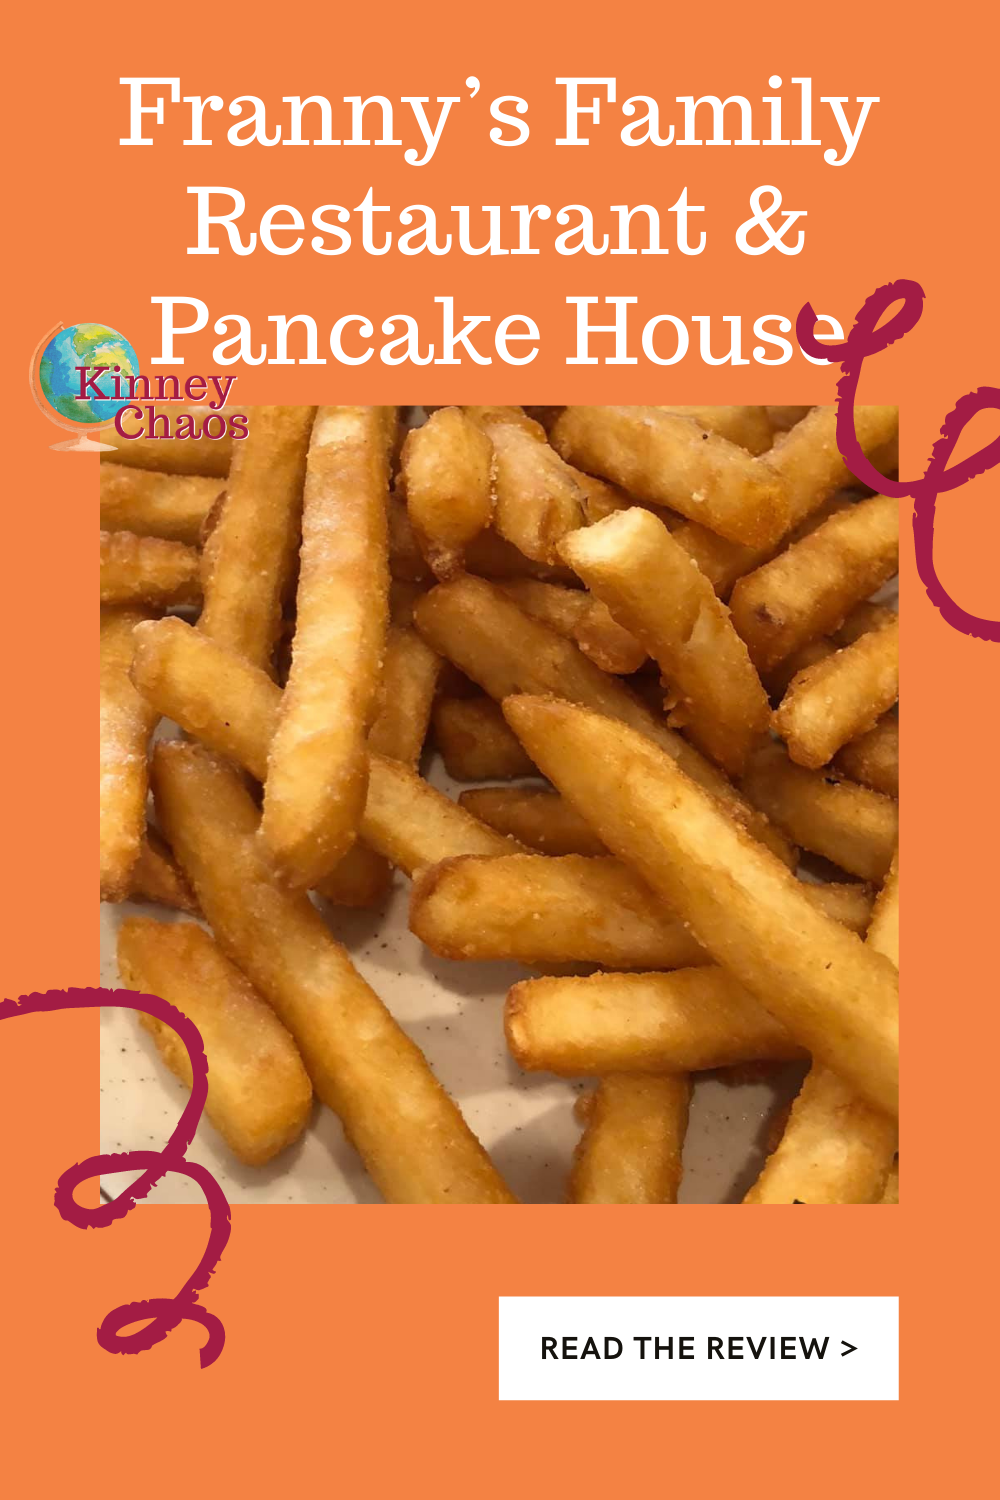 Breakfast food is comfort food, and we are always searching for a great place to get that warm, homey feeling. Welcome to Franny's Family Restaurant & Pancake house!